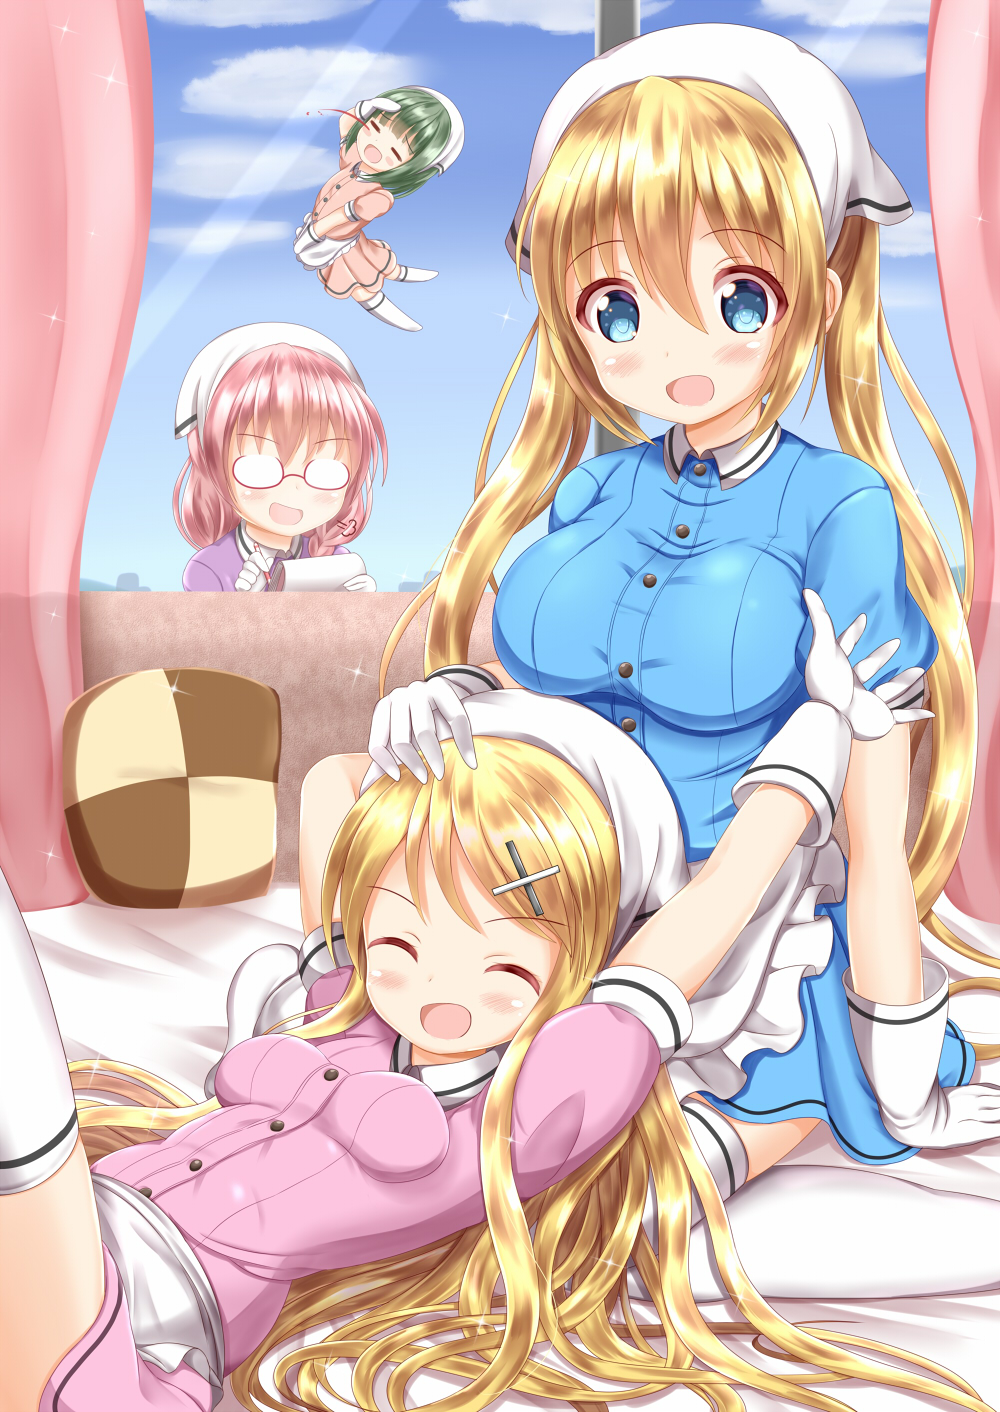 4girls :d ^_^ amano_miu apron arm_up bed_sheet blend_s blonde_hair blood blue_eyes blue_shirt blue_skirt blue_sky blush breasts brown_hair chibi closed_eyes closed_eyes clouds collared_shirt commentary_request company_connection cosplay crossover curtains day dress_shirt glasses gloves green_hair hair_ornament hairclip hand_on_another's_head head_scarf highres hinata_kaho holding holding_notepad holding_pencil indoors kin-iro_mosaic kujou_karen lap_pillow large_breasts long_hair lying manga_time_kirara matching_outfit medium_breasts multiple_girls no_shoes nosebleed notepad on_back oomiya_shinobu opaque_glasses open_mouth pencil pink_shirt pink_skirt pleated_skirt purple_shirt red-framed_eyewear semi-rimless_eyewear shirt sitting skirt sky smile stile_uniform thigh-highs twintails under-rim_eyewear uniform very_long_hair waist_apron waitress wariza white_apron white_gloves white_legwear window x_hair_ornament zenon_(for_achieve)